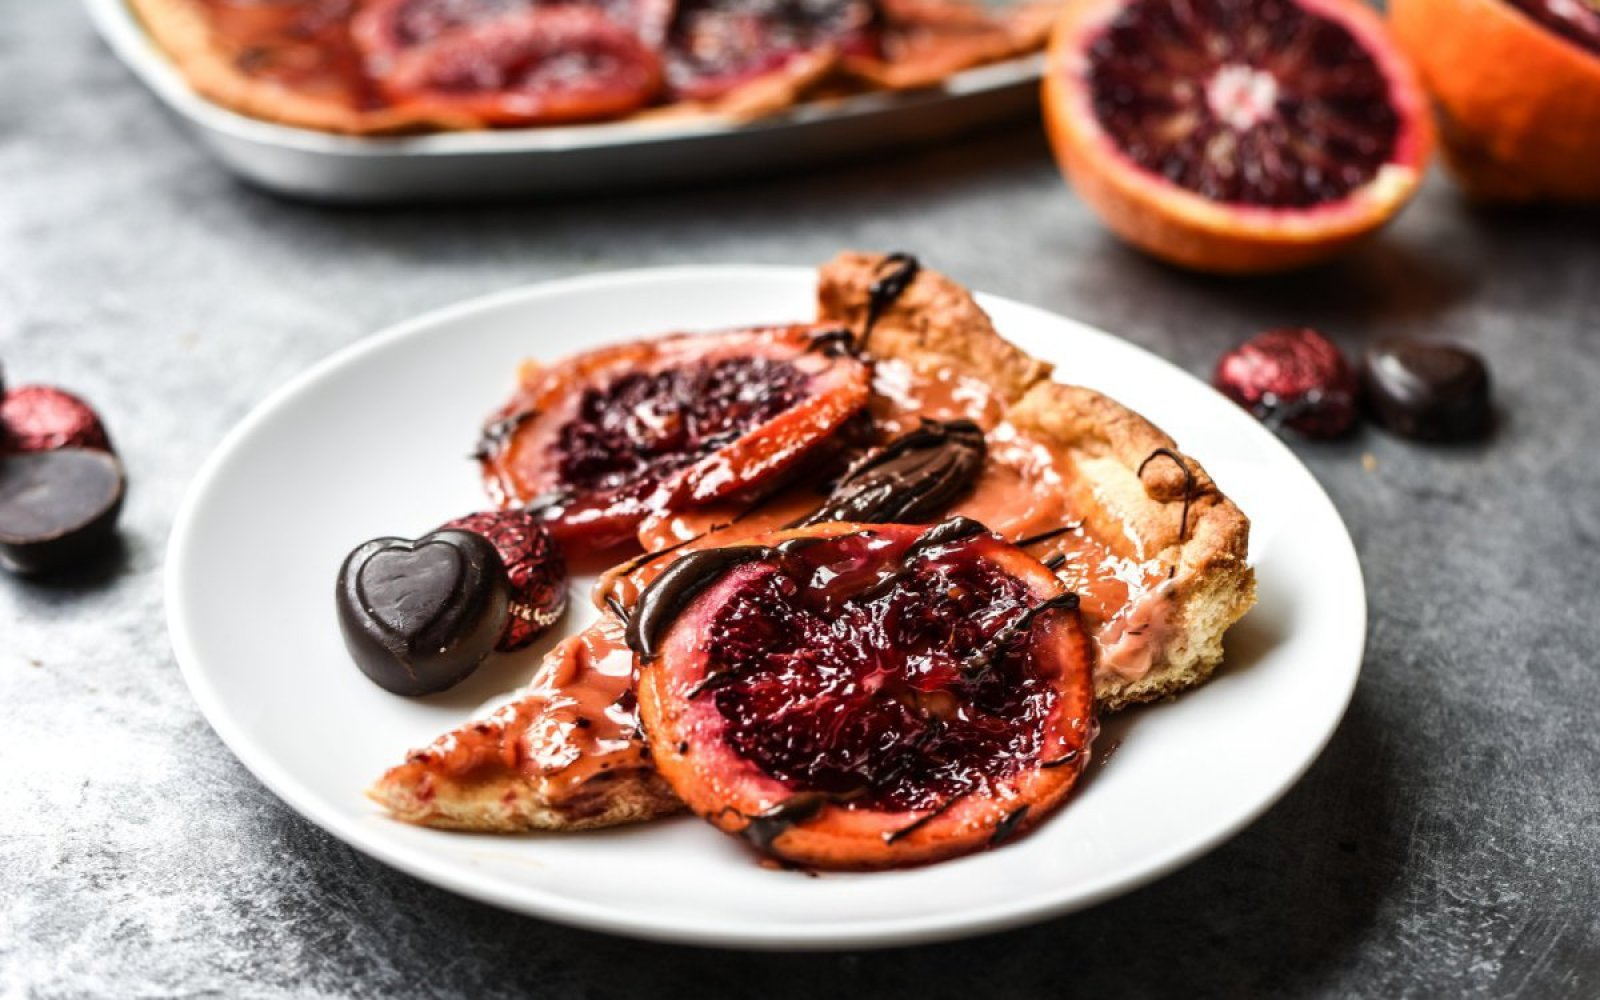 Vegan Chocolate Drizzled Blood Orange Cream Tart